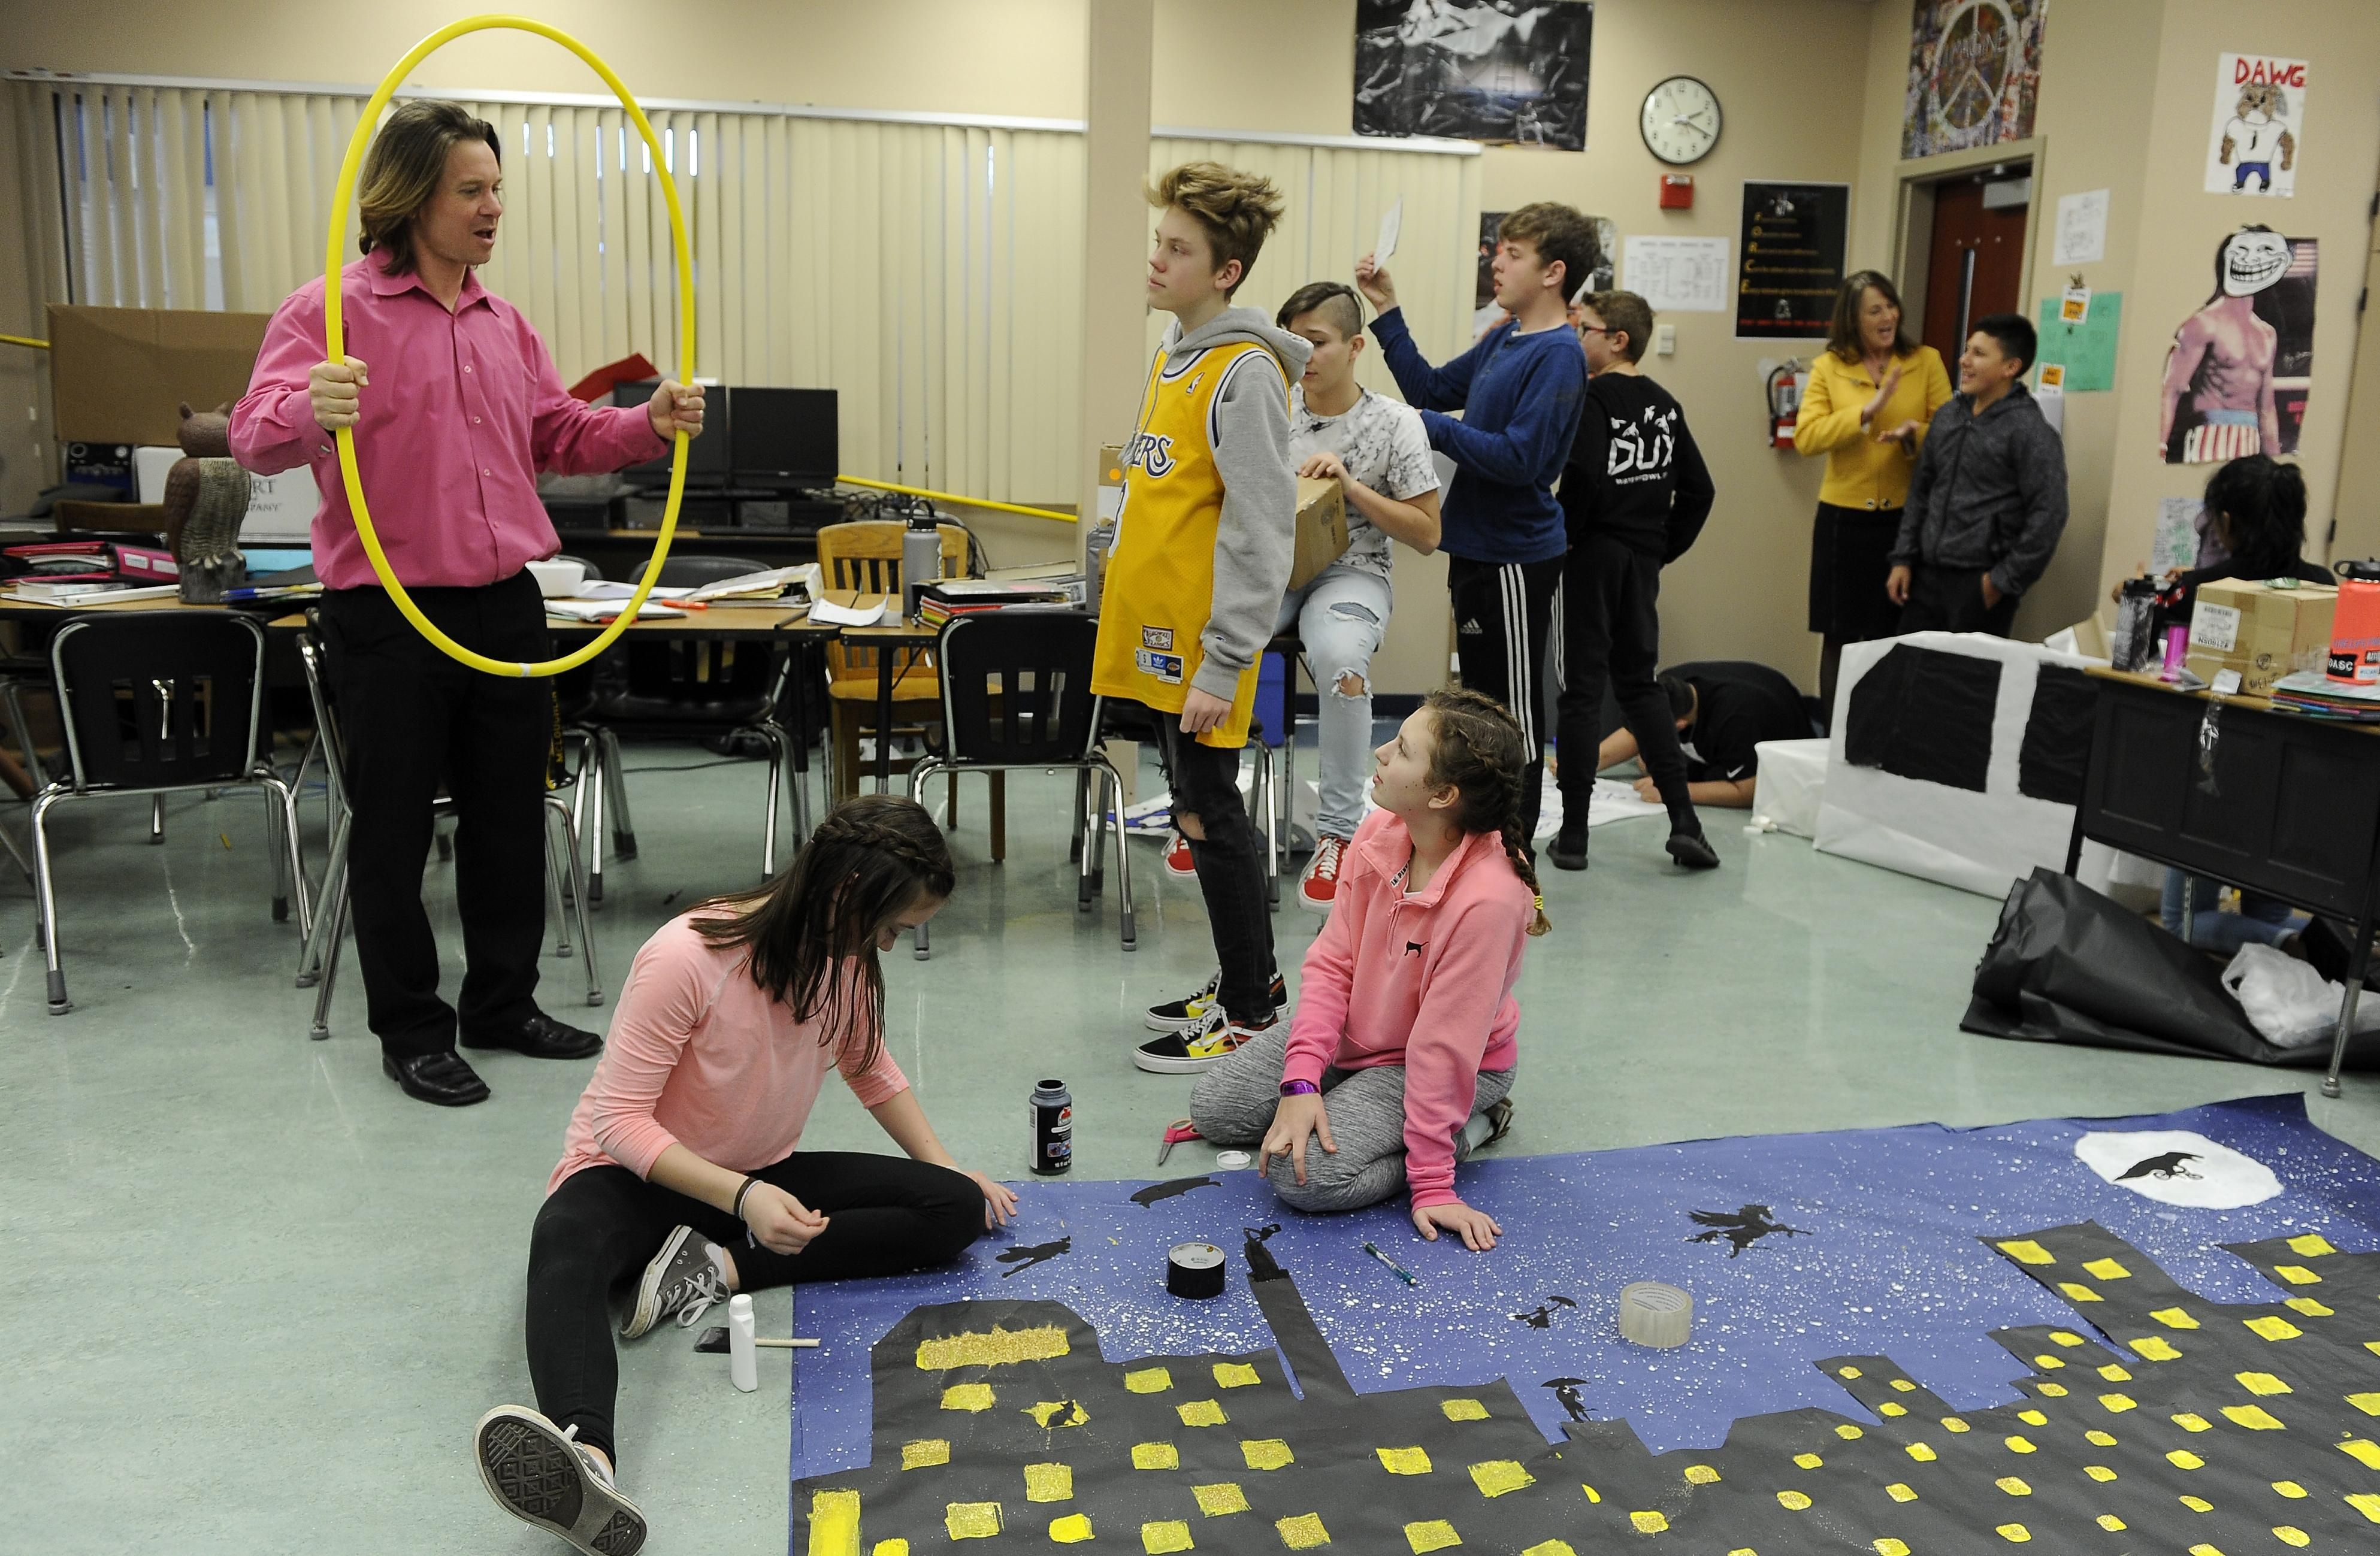 McLoughlin Middle School teacher Adam Drew brainstorms poster ideas with students for an upcoming dance. [Mail Tribune / Andy Atkinson]